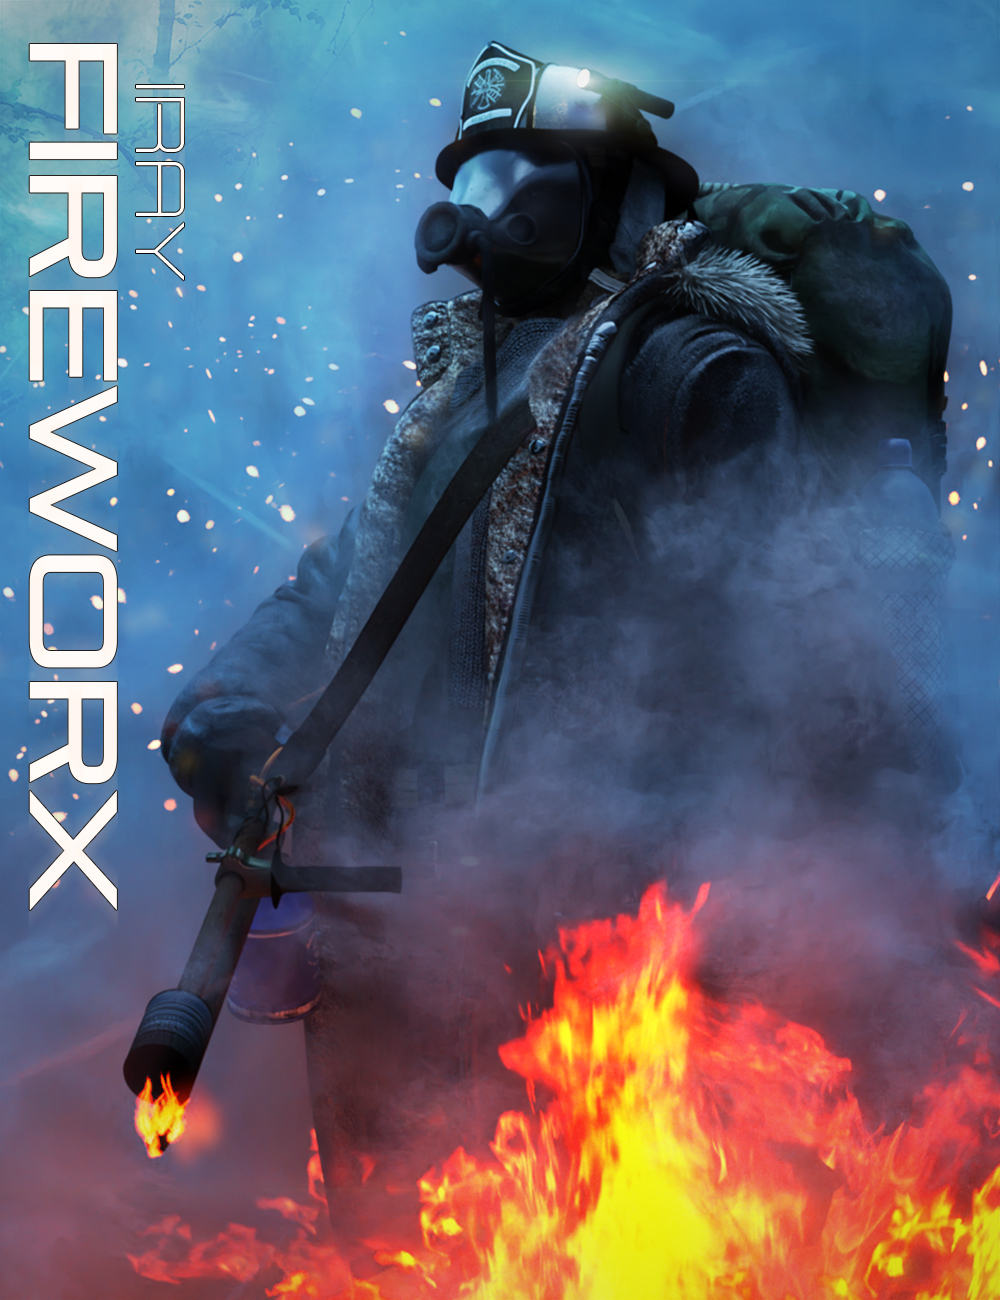 Iray FireWorx by: KindredArts, 3D Models by Daz 3D